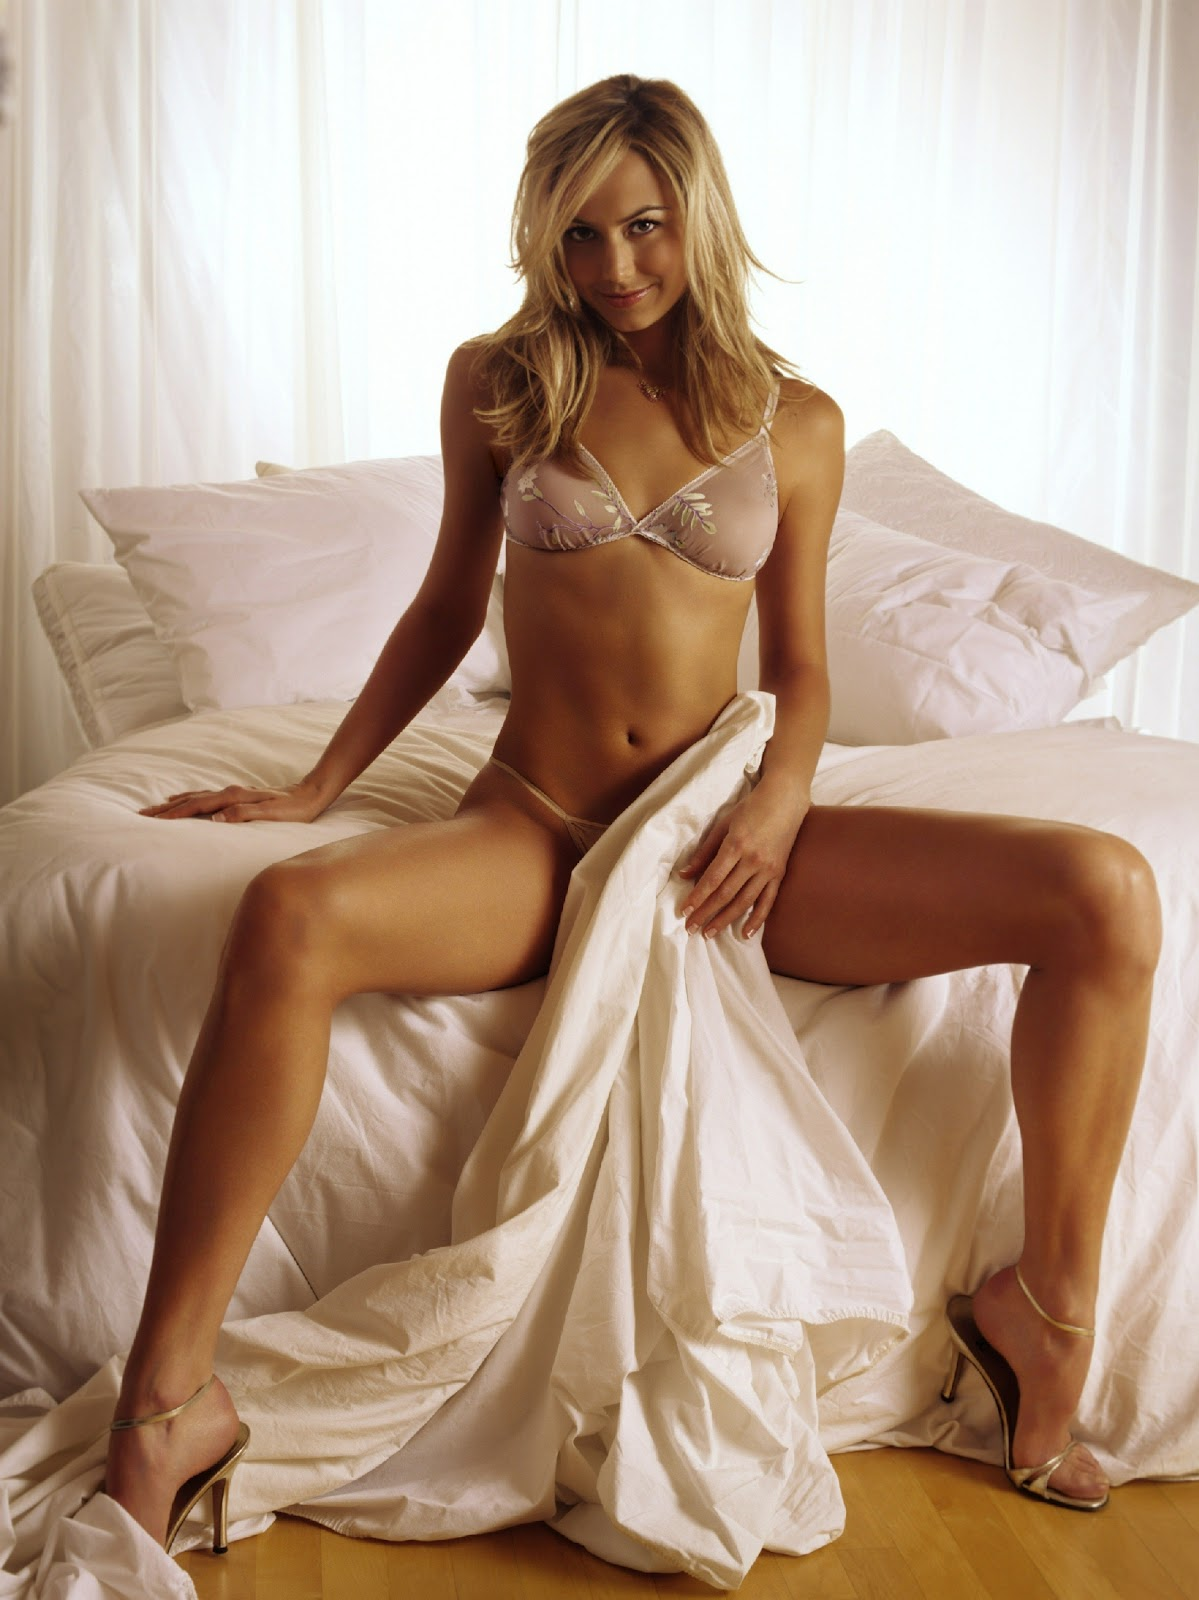 Stacy keibler mens fitness photoshoot june 2012 3